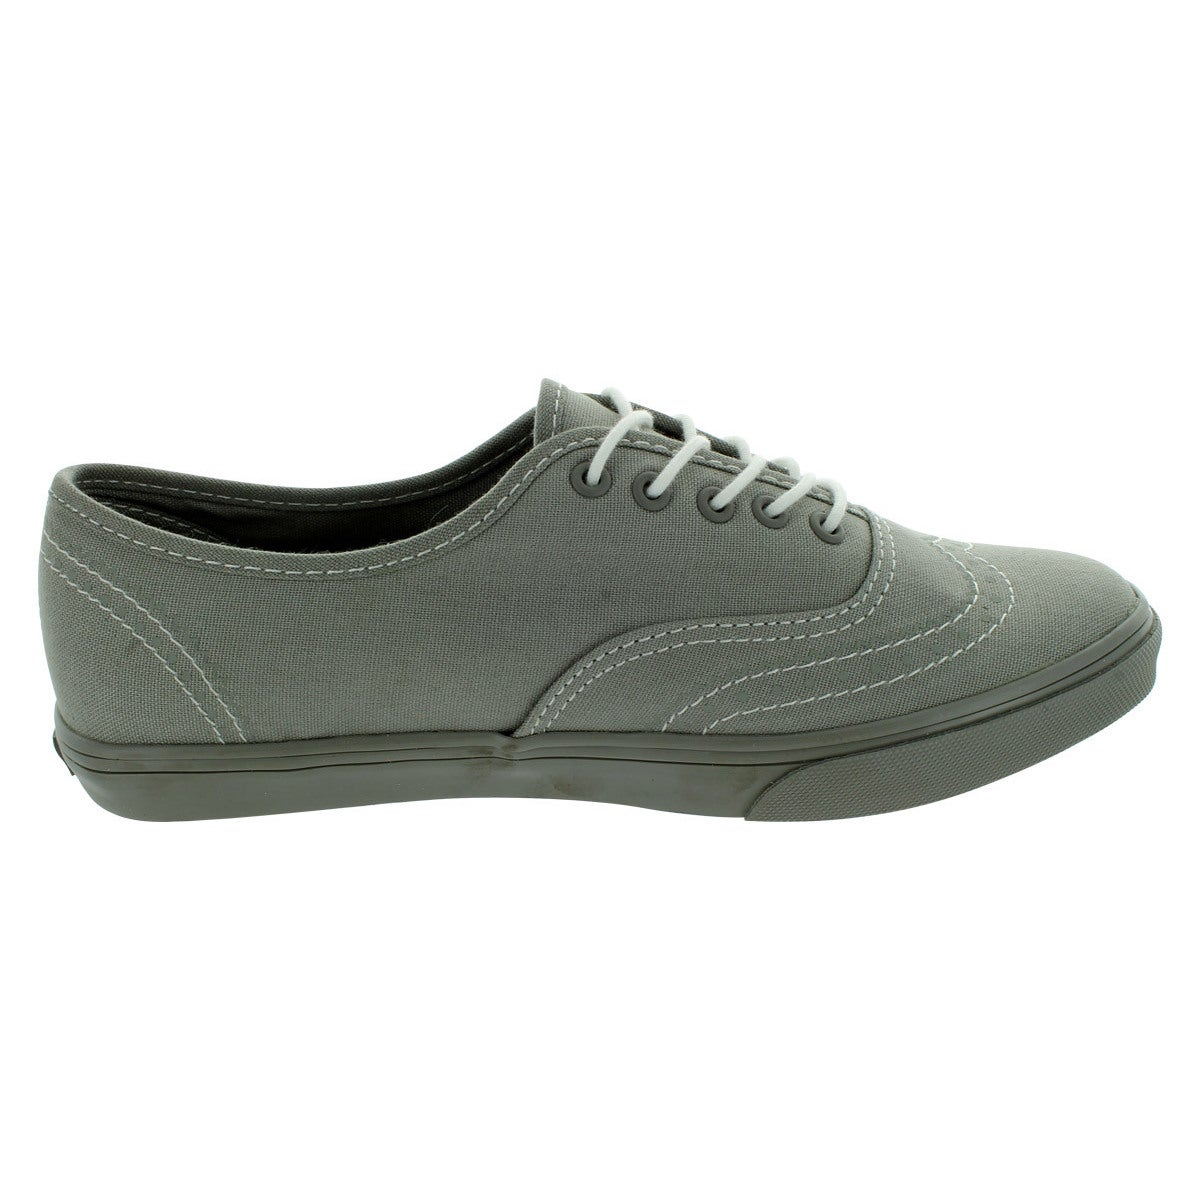 Vans Authentic Lo Pro (Printed Oxford) Casual Shoes (Grey/) - Free Shipping  Today - Overstock.com - 19154807